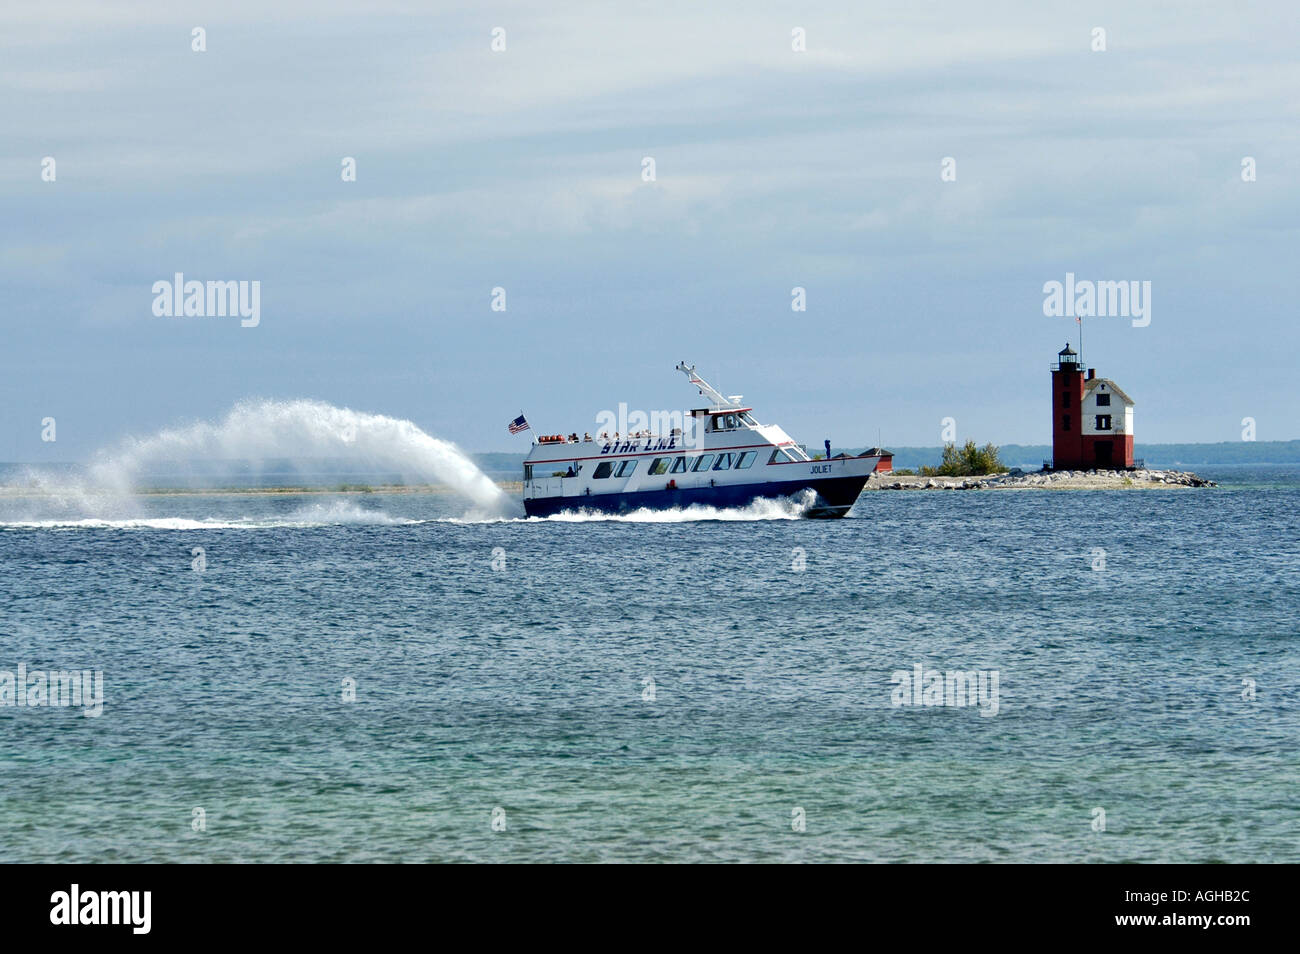 High seed boats transports tourists Mackinaw Island in Michigan between the Upper and Lower Peninsula in Lake Huron - Stock Image